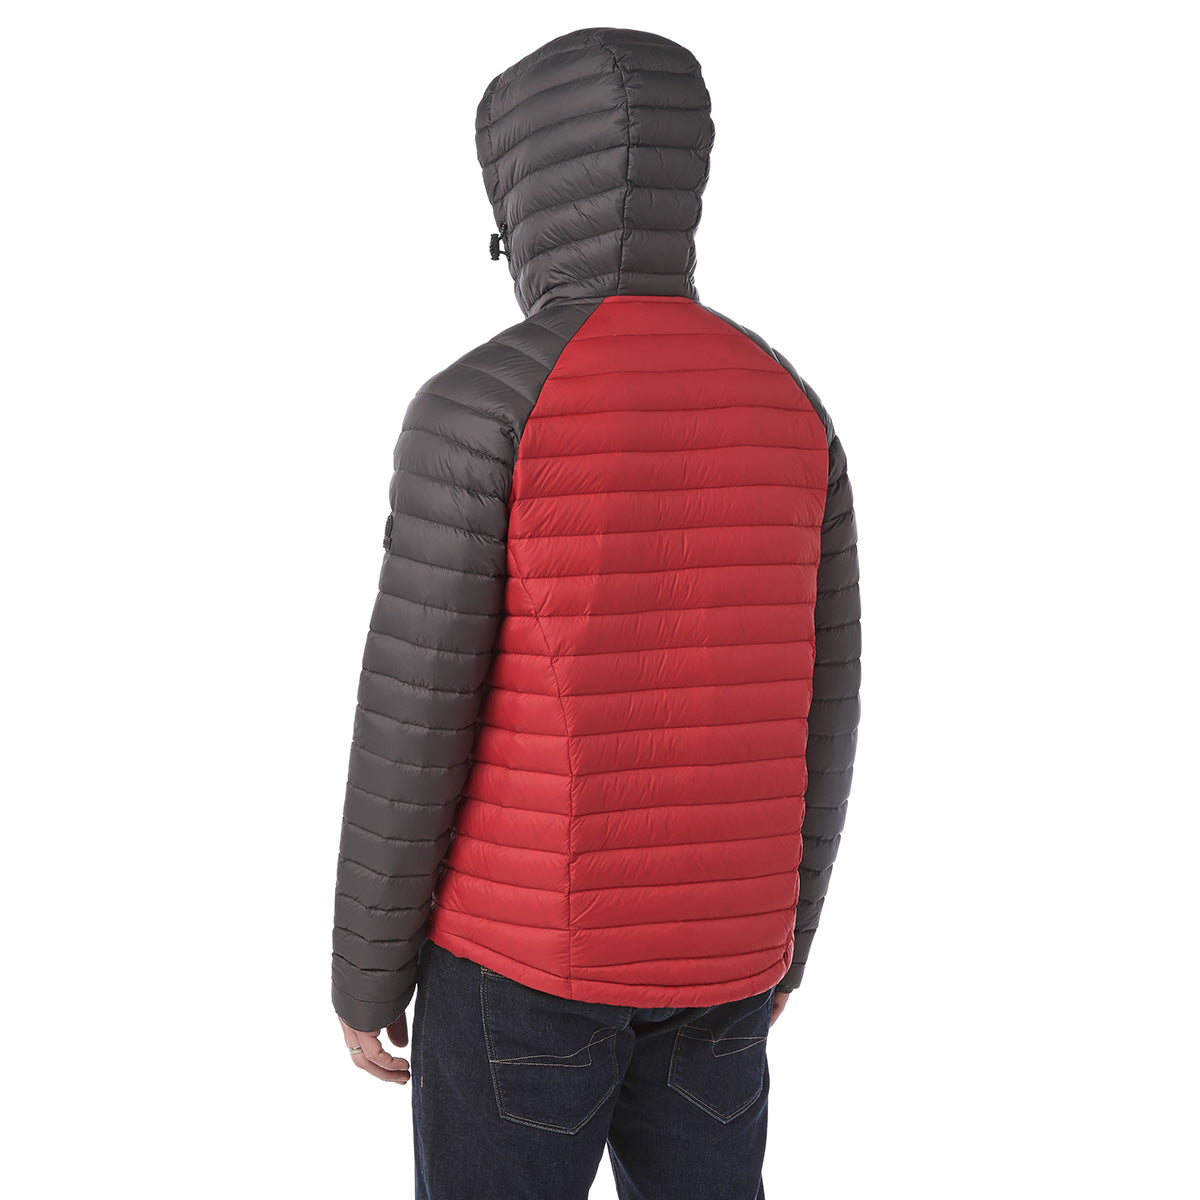 Beck Mens Hooded Down Jacket - Red/Charcoal image 4